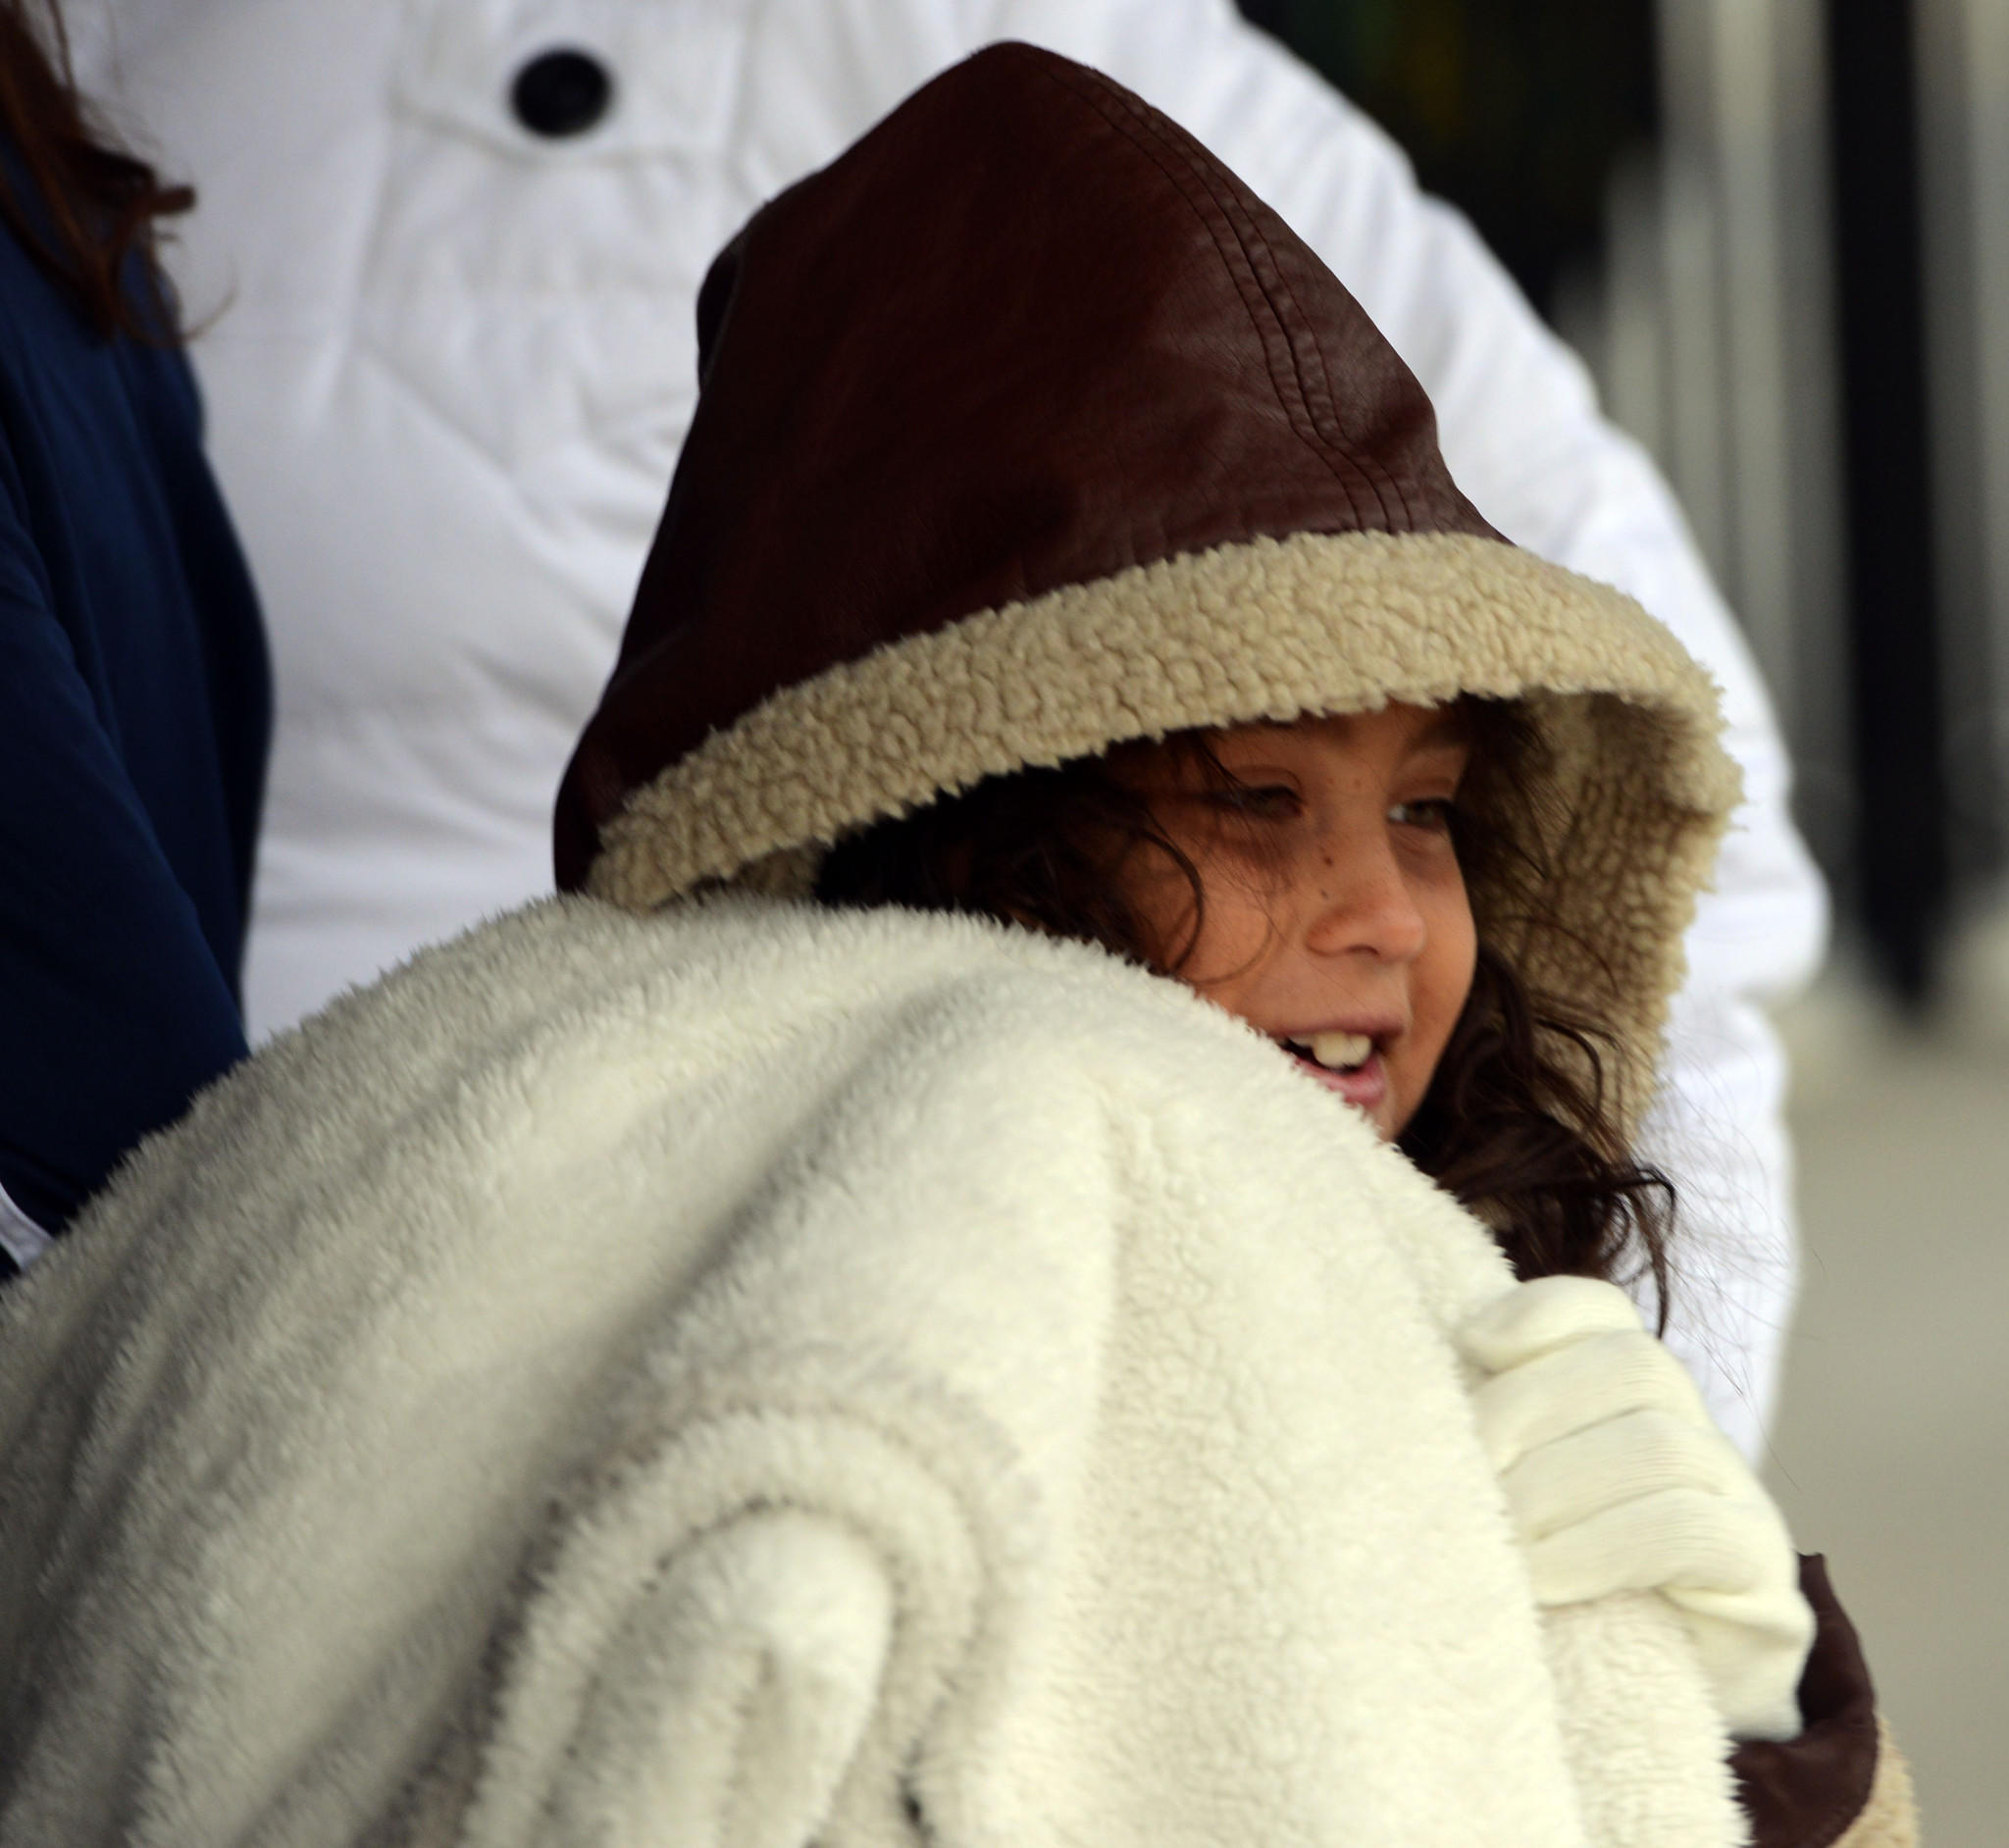 Catalina Perea, 9, bundled up in a coat and a blanket while waiting for an Amtrak train with her family at the West Palm Beach station Tuesday morning when the temperature was around 50 degrees.